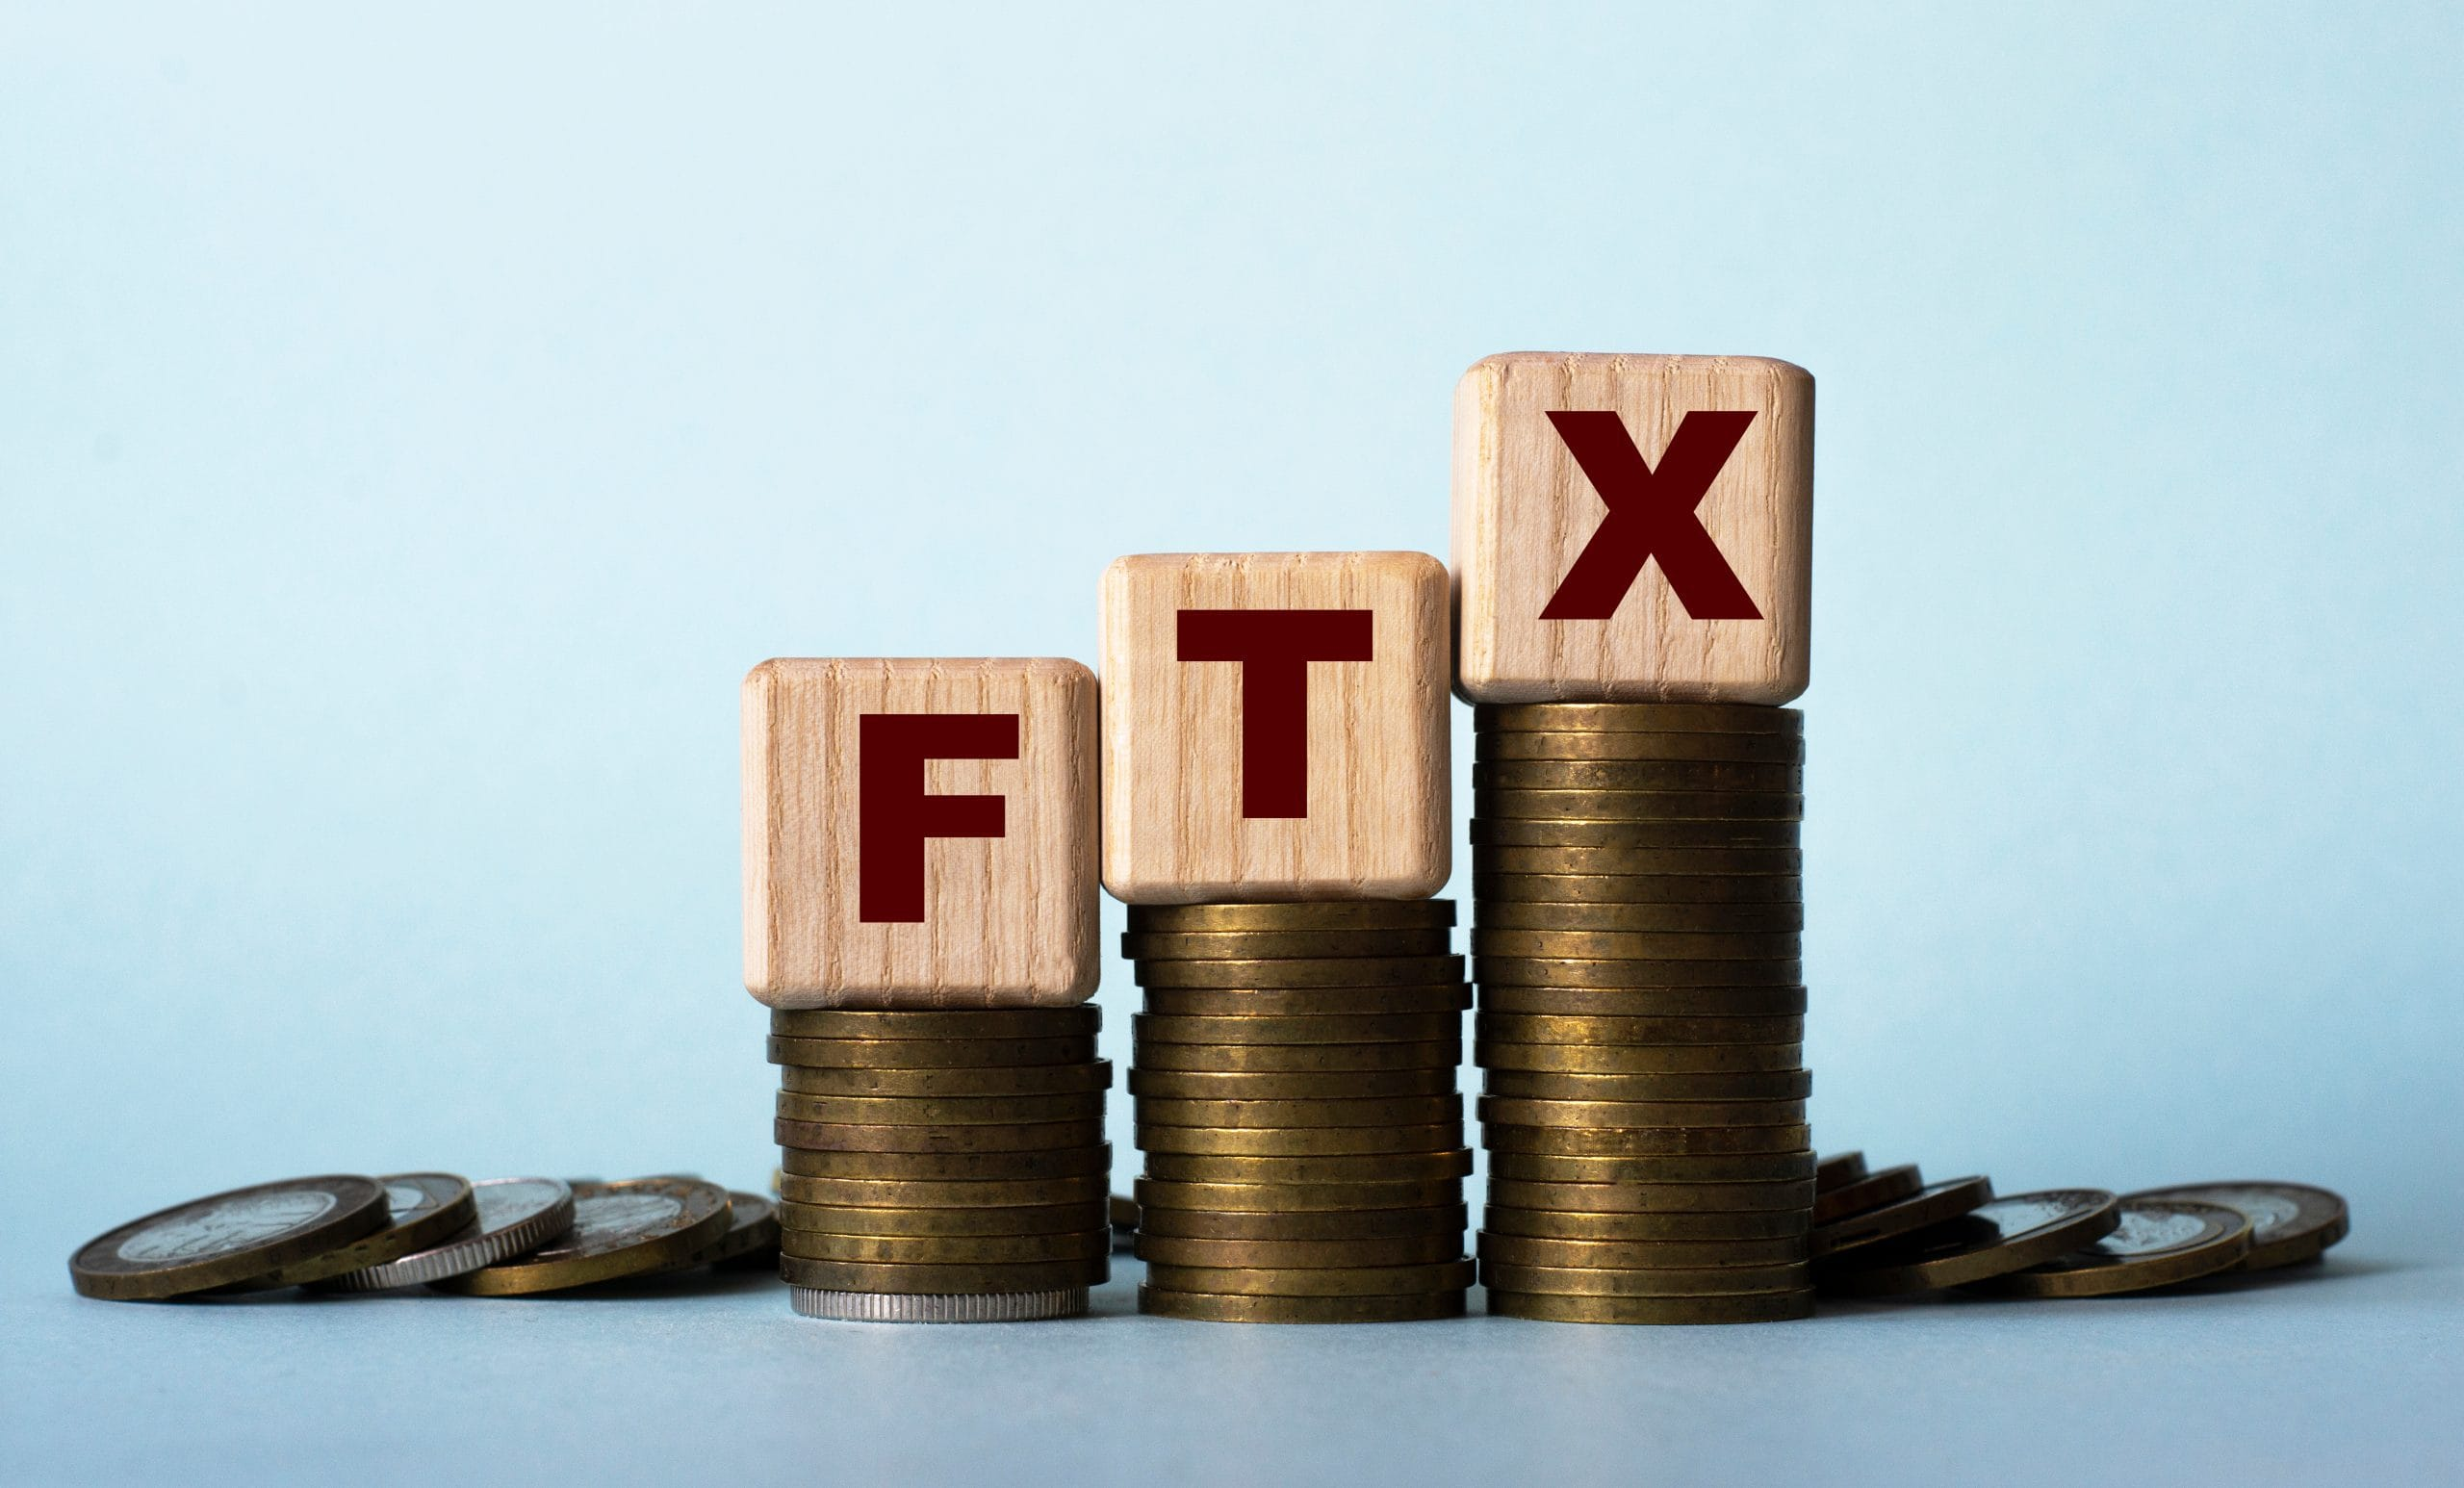 FTX token pumps 46 percent in just seven days - LedgerX is bought out